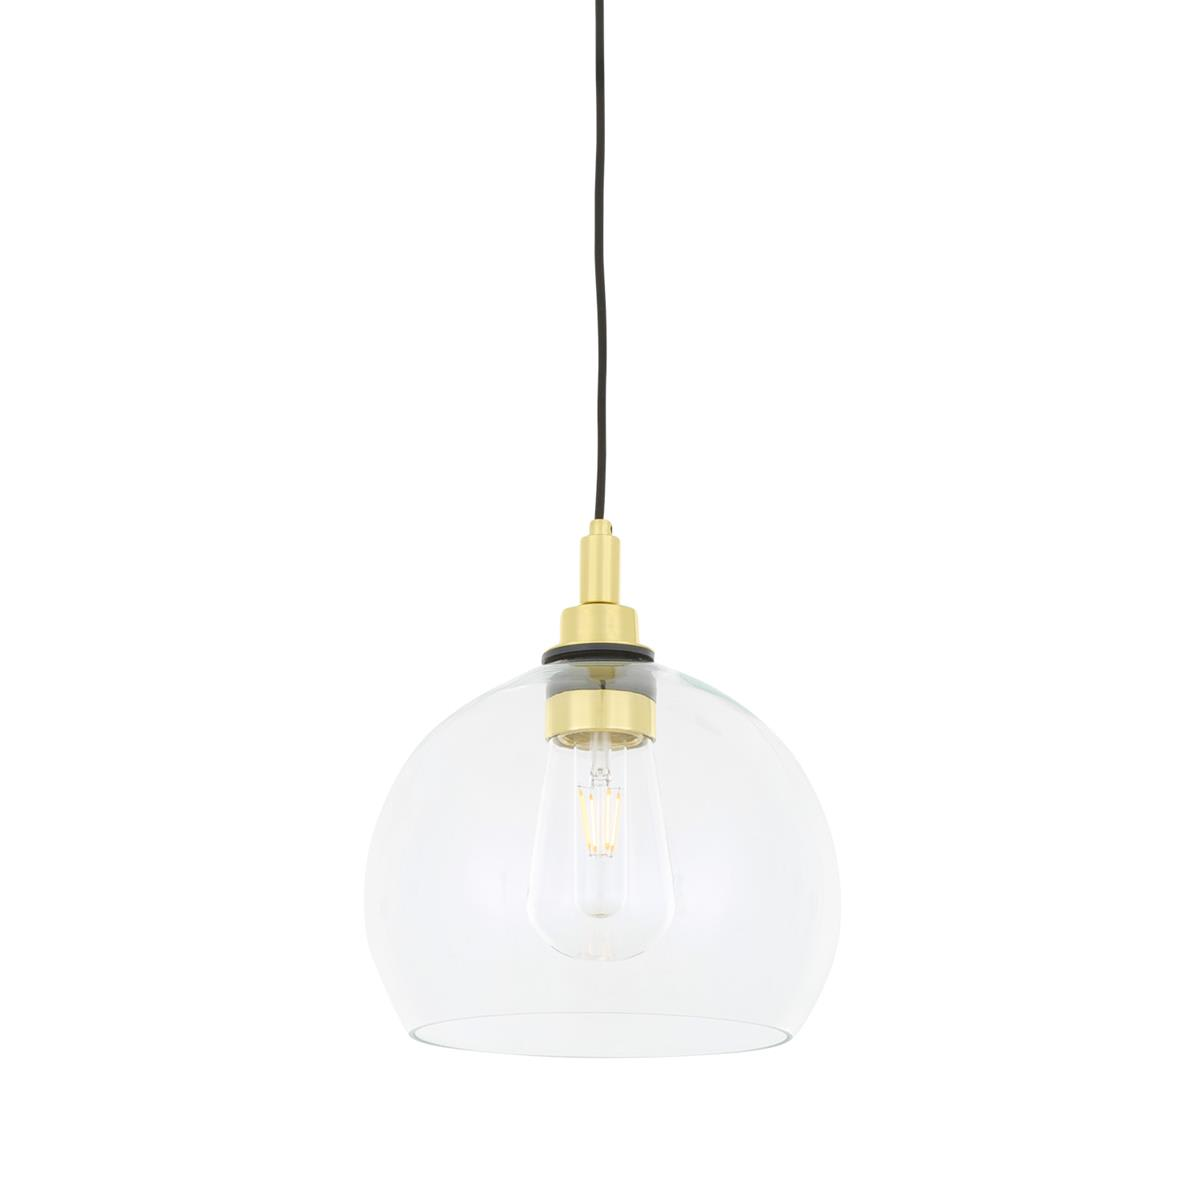 Mullan Lighting Leith 25cm Clear Glass Pendant Ip65 Antique Brass